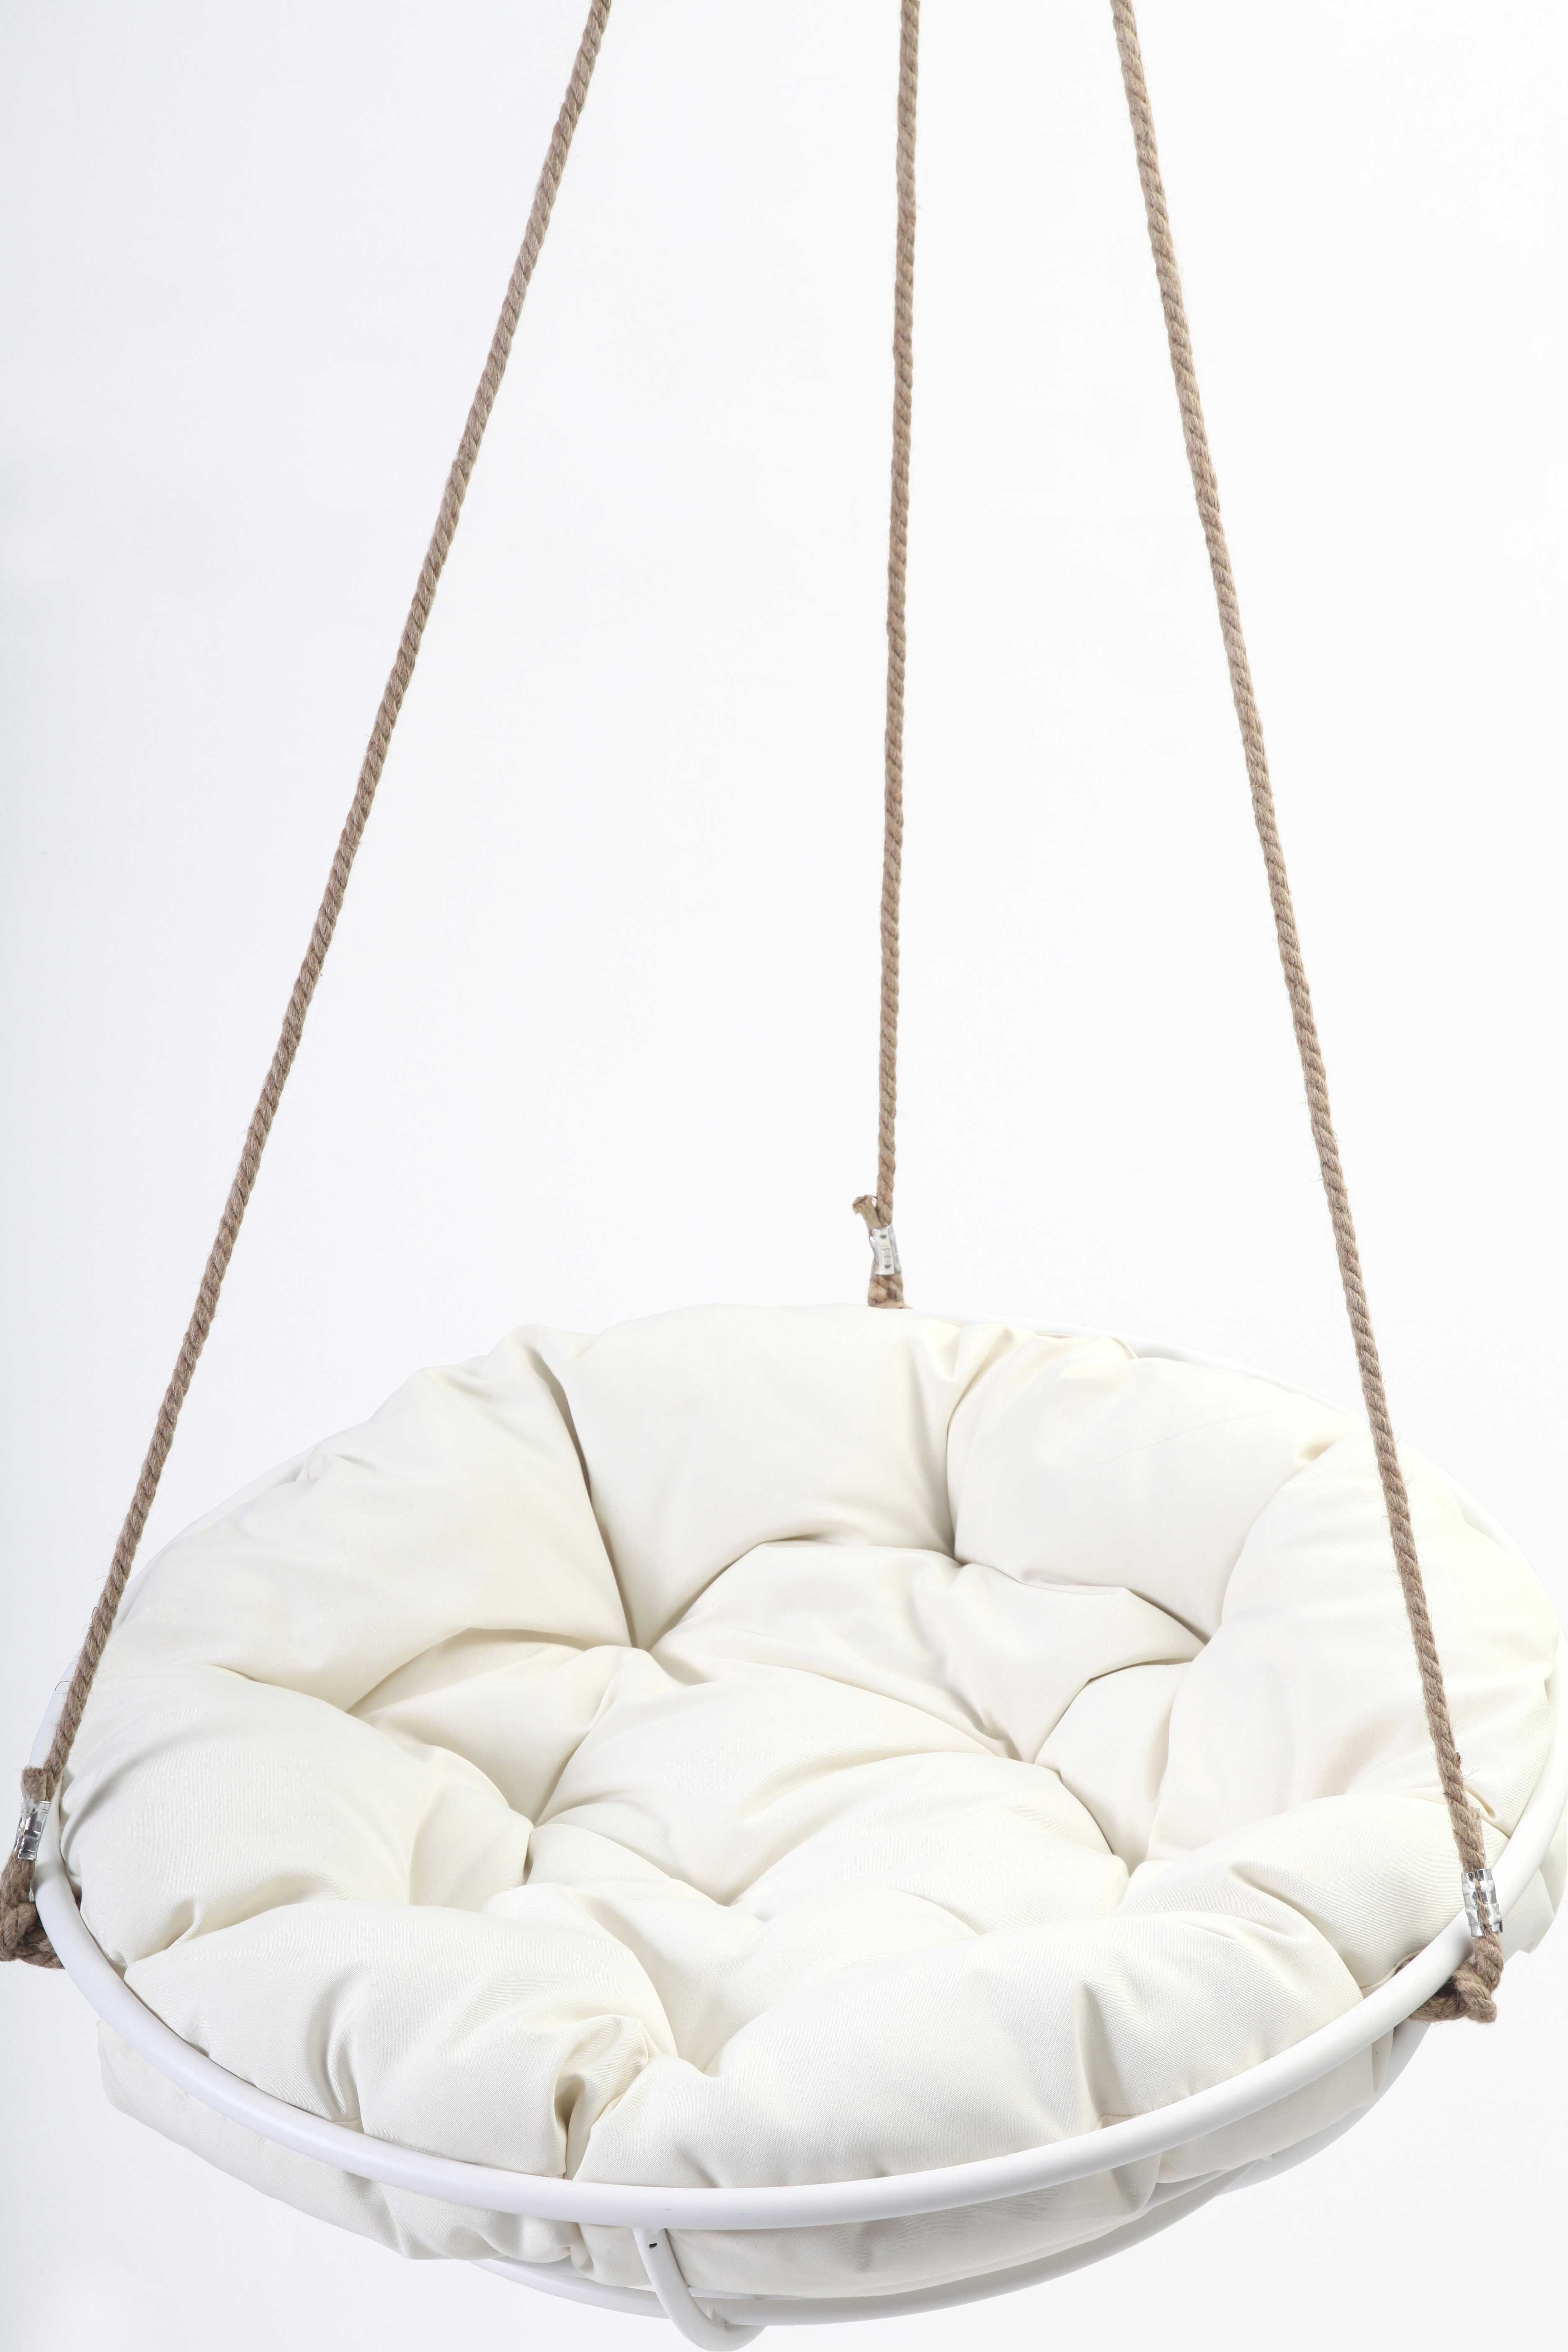 Cool Hanging Chairs Antique Wood Rocking Chair Styles Papasan For Your Beloved Family Cozy White Framed